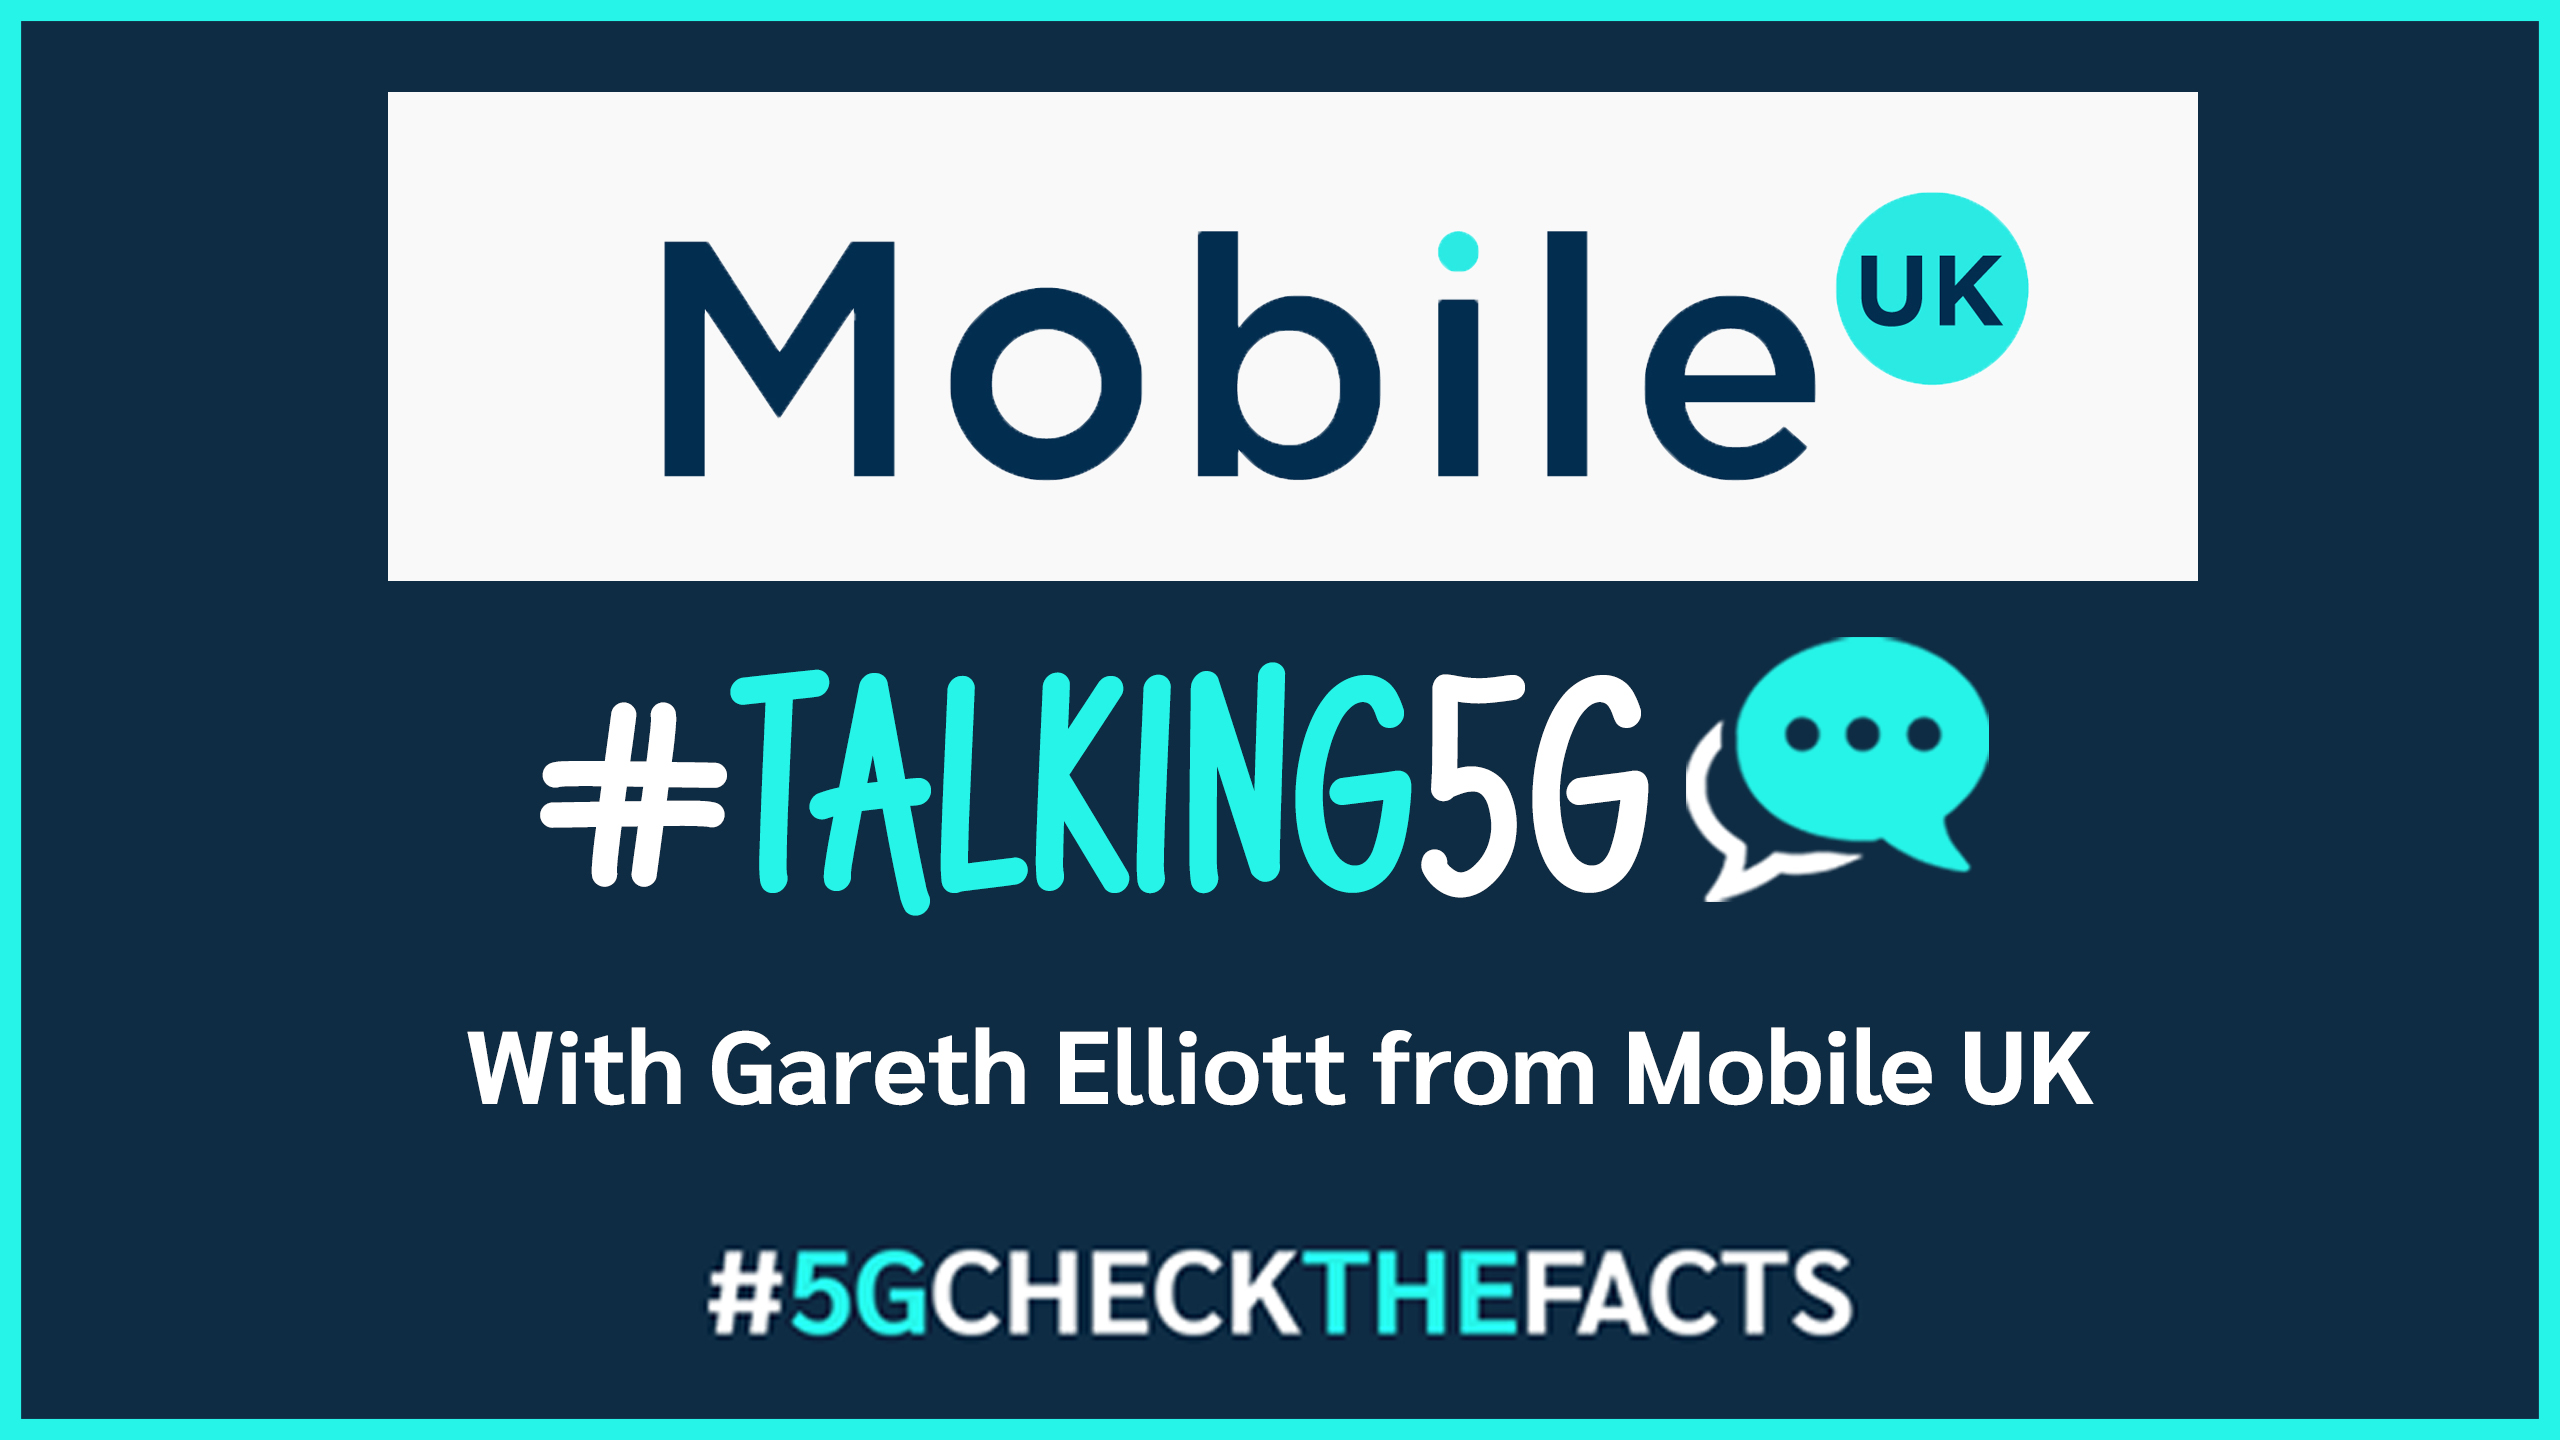 #Talking5G, #5G, Mobile, Infrastructure, Climate Change, Environment, Mobile UK